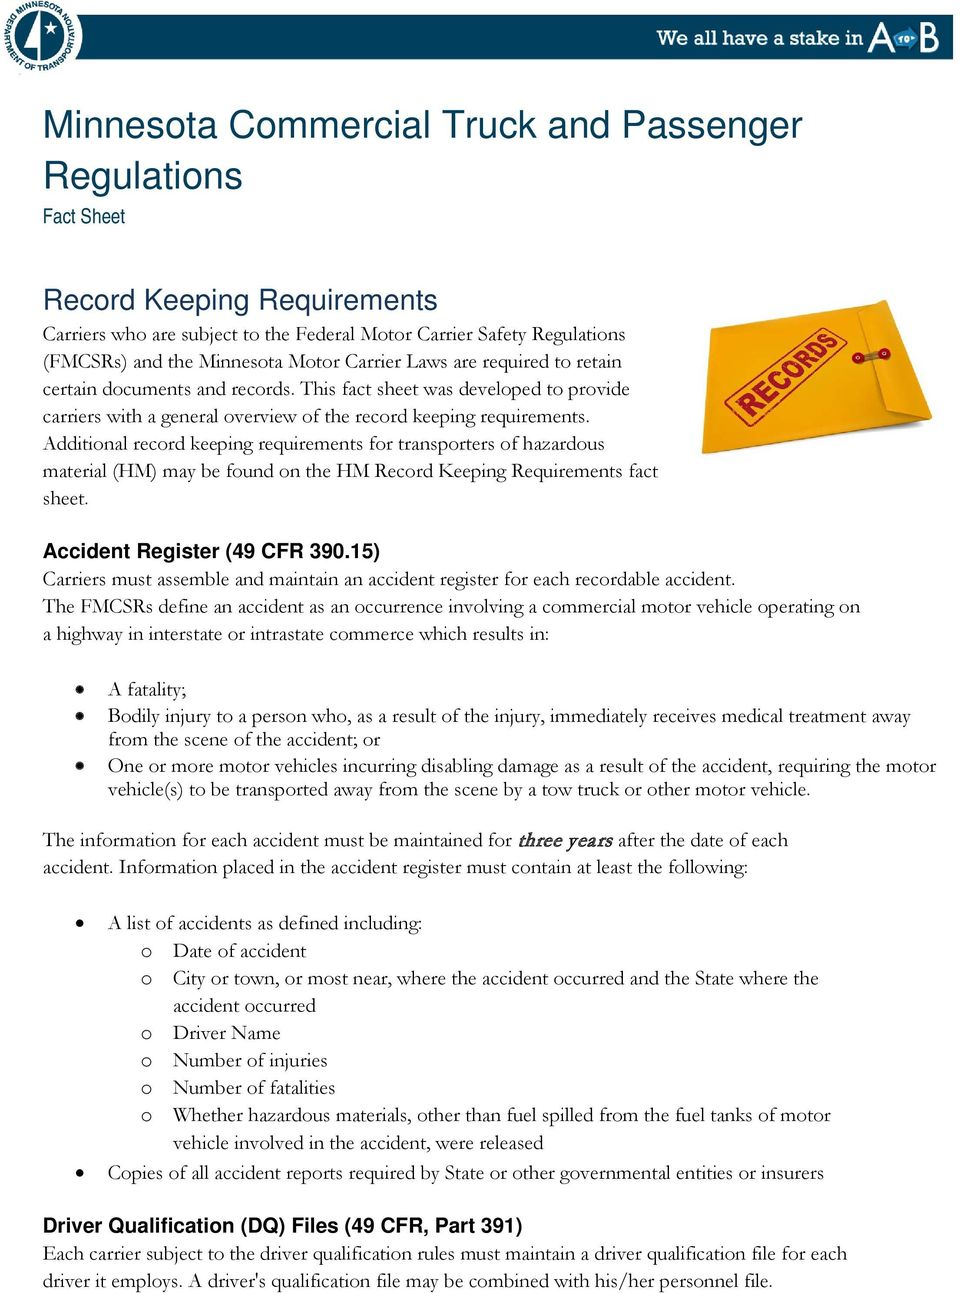 Additional record keeping requirements for transporters of hazardous material (HM) may be found on the HM Record Keeping Requirements fact sheet. Accident Register (49 CFR 390.